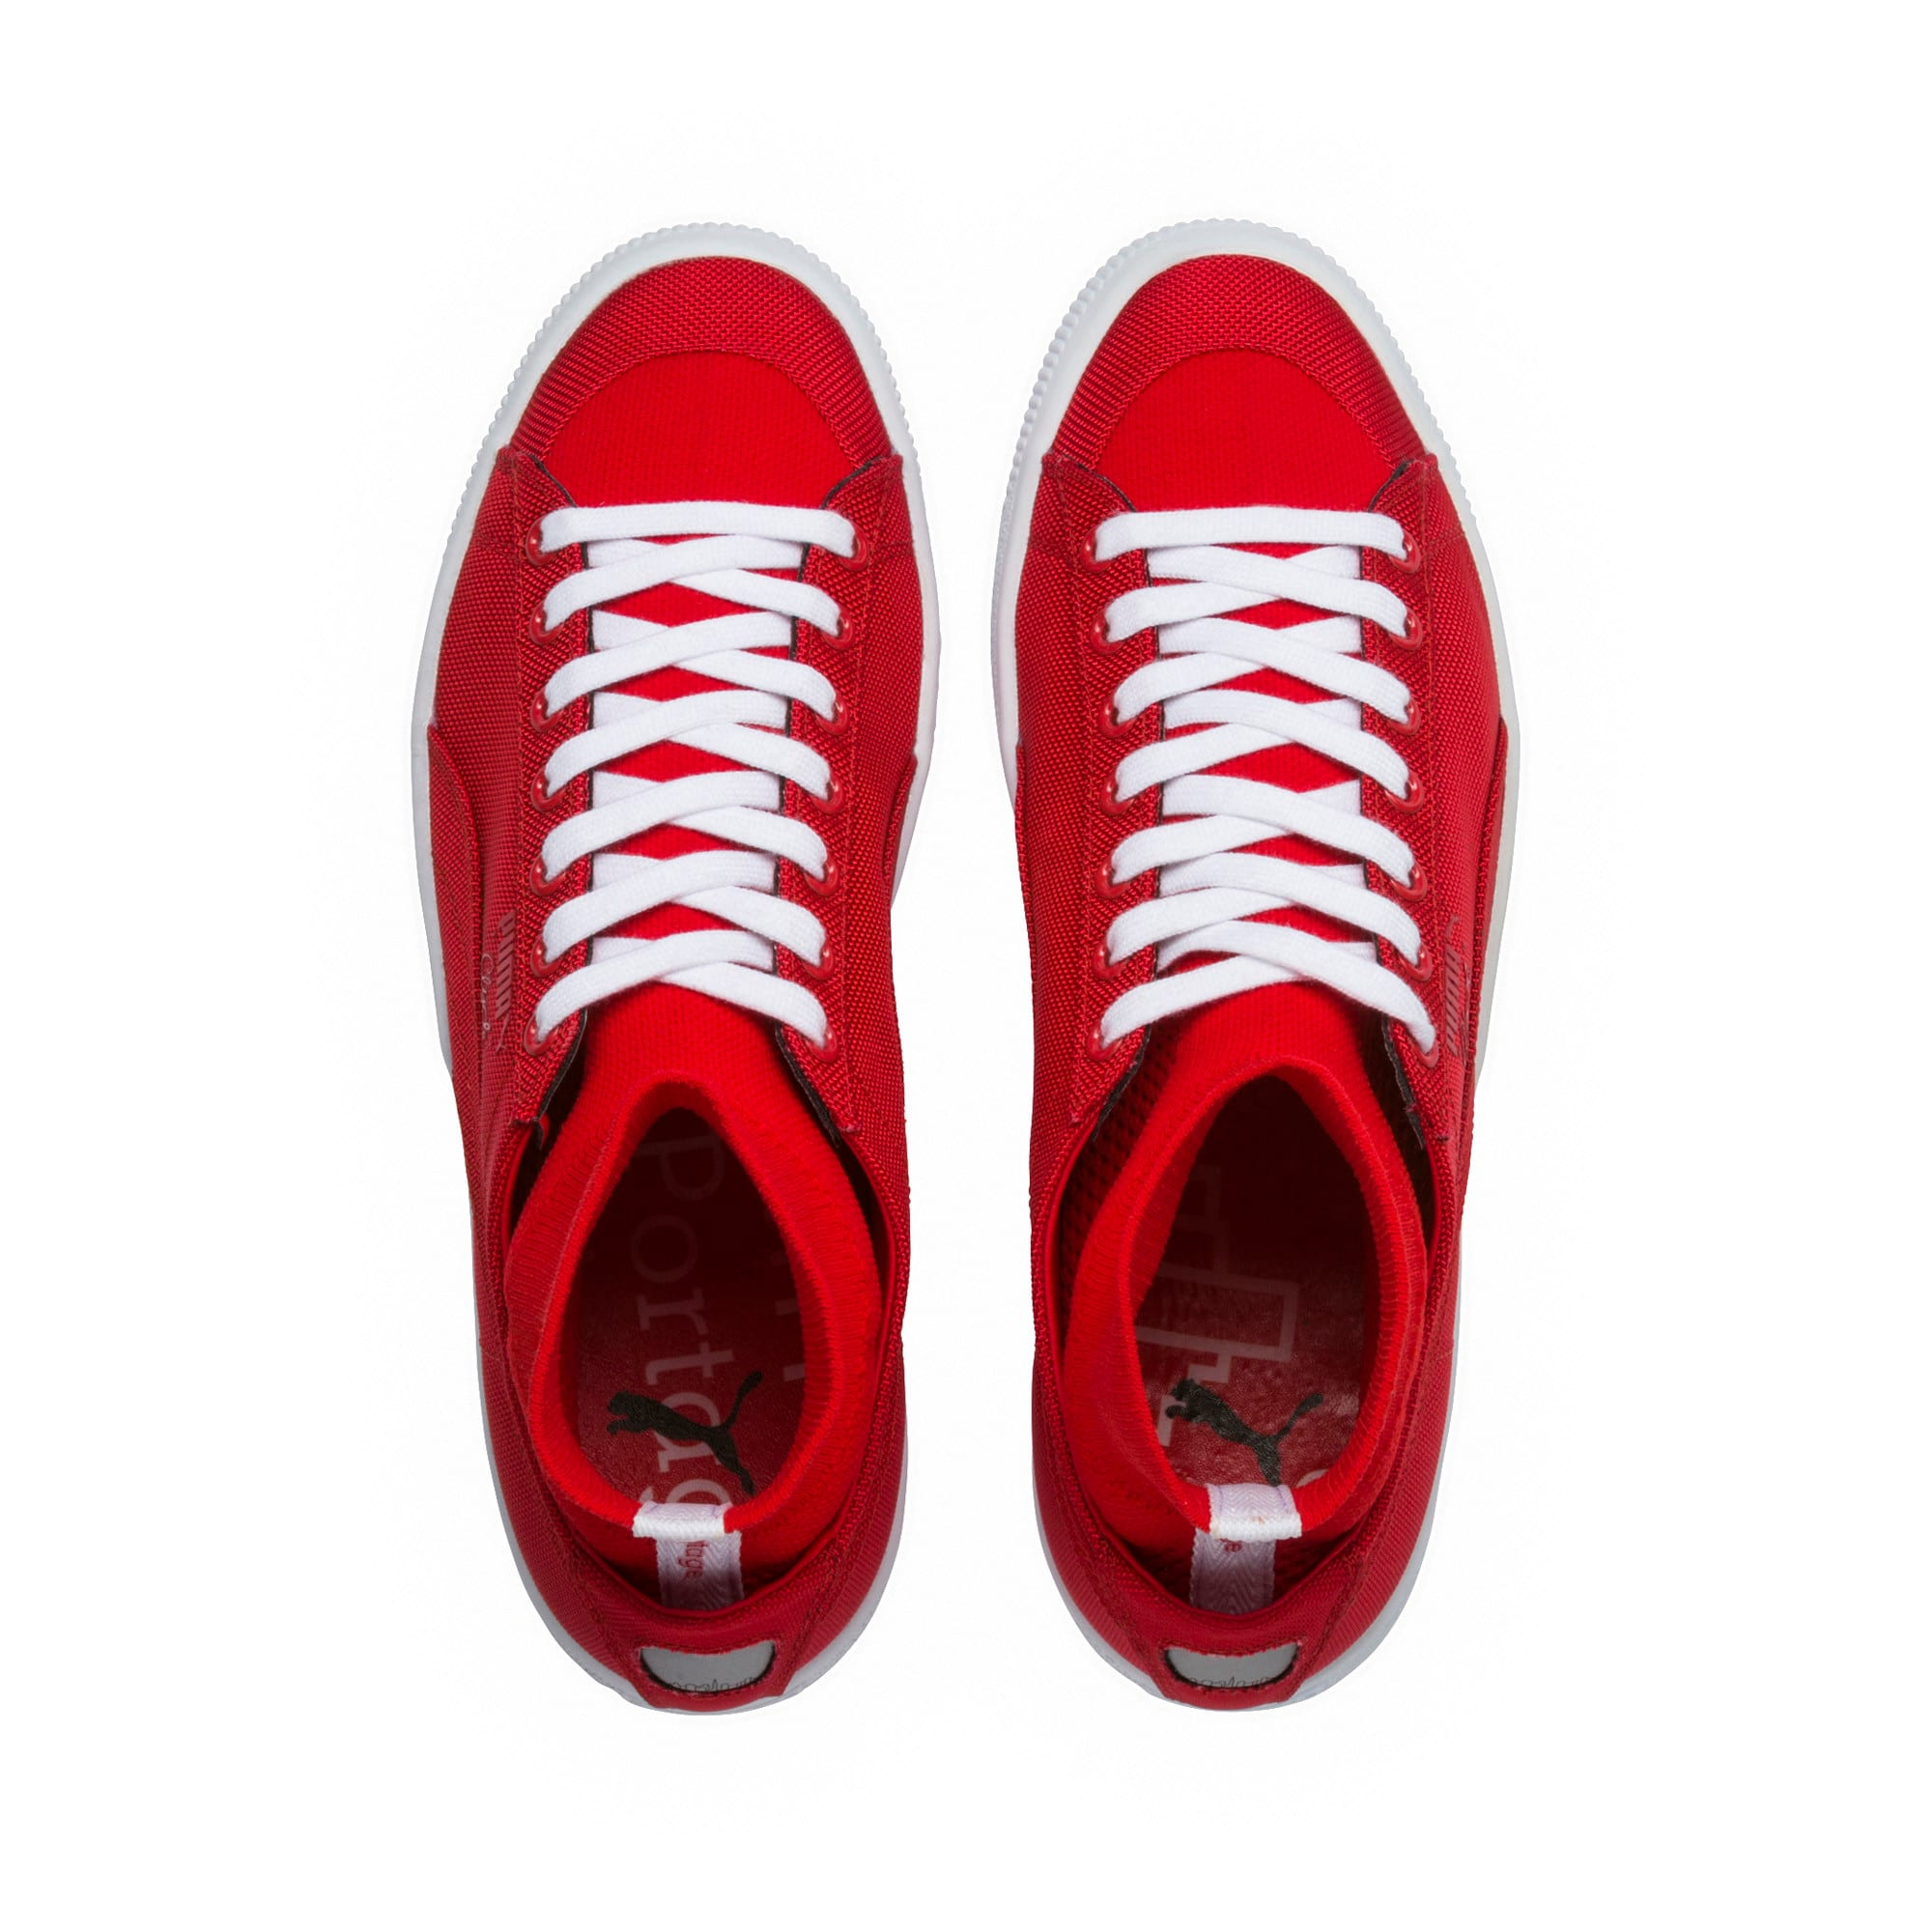 Thumbnail 5 of PUMA x MANHATTAN PORTAGE Clyde Sock Sneakers, High Risk Red-High Risk Red, medium